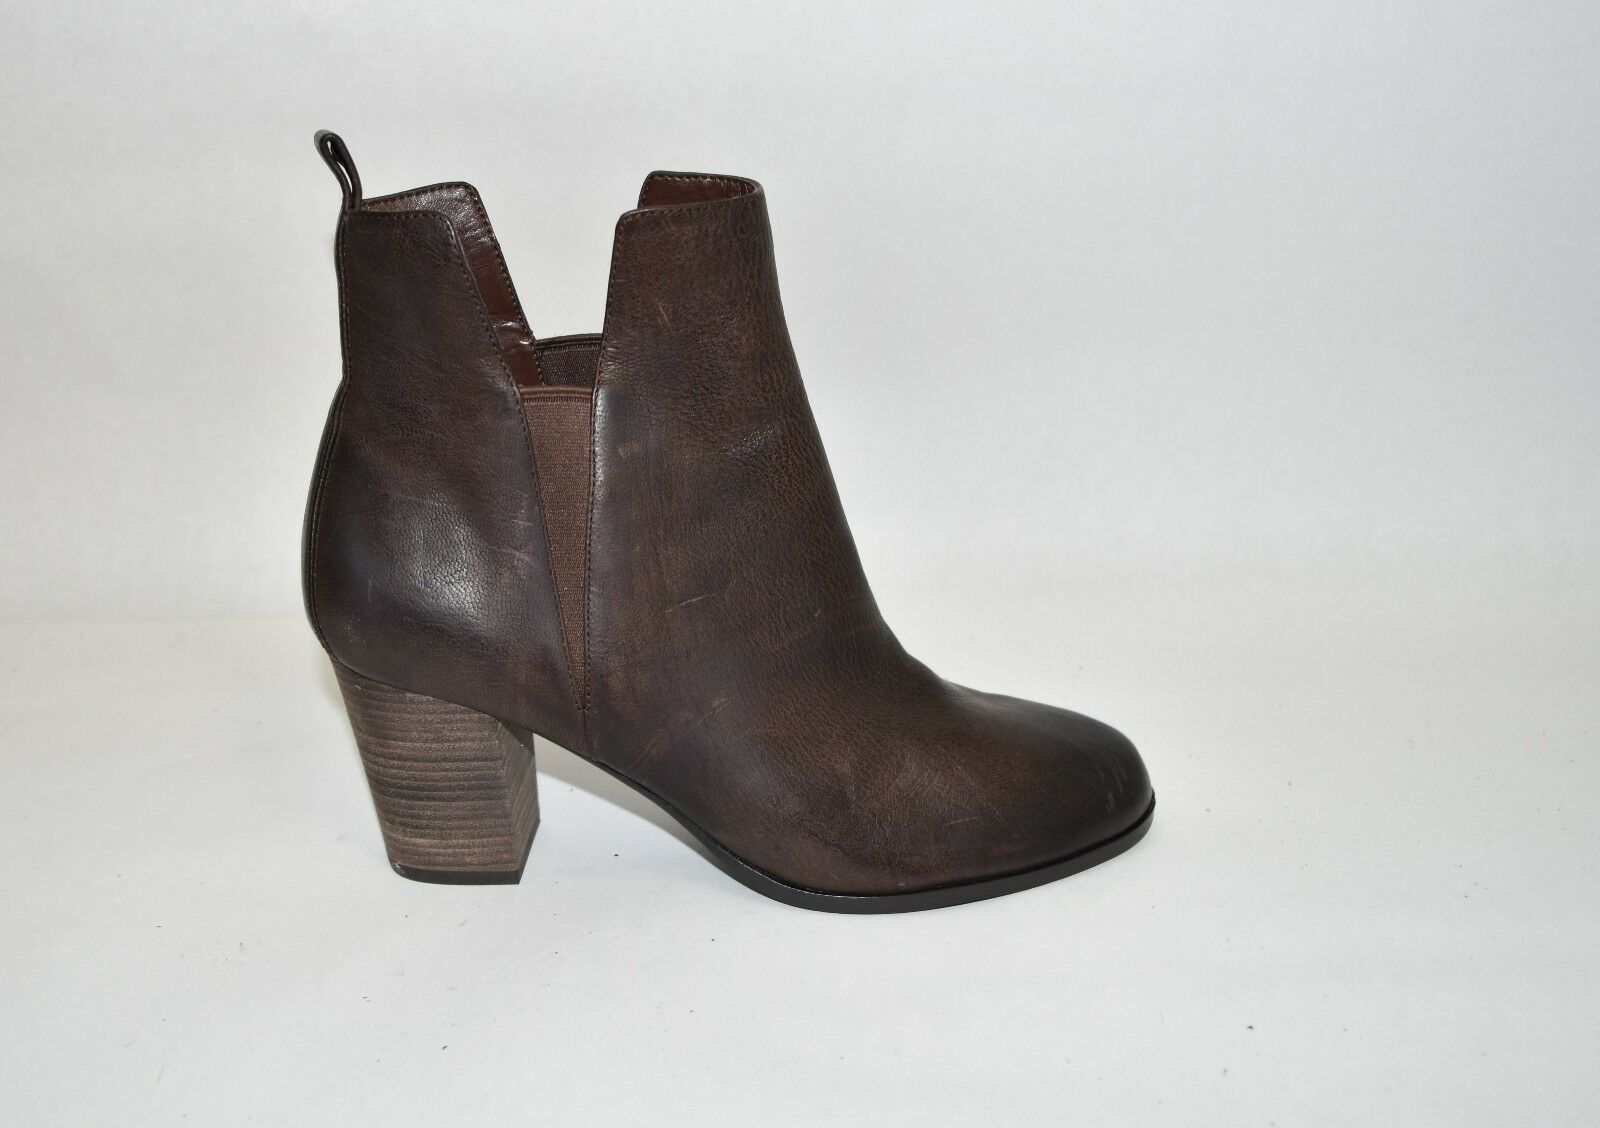 New  Cole Haan Cassidy II Bootie BrownLeather w05328 Size 8 T39 MSRP  300